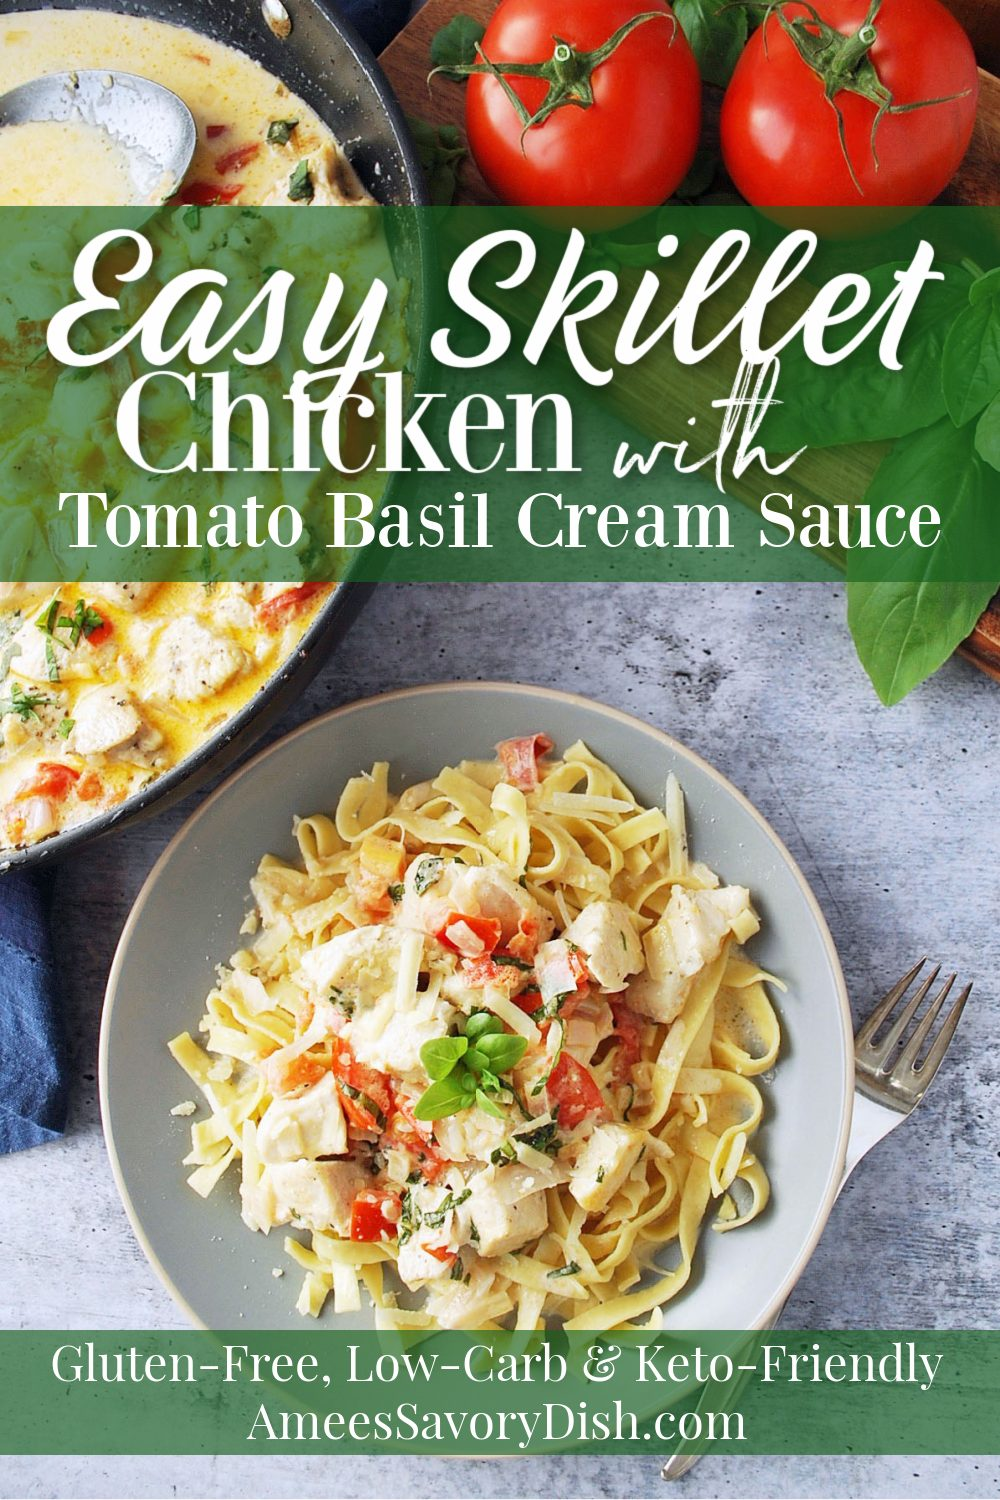 Chicken with Tomato Basil Cream Sauce is an easy skillet chicken recipe made with boneless chicken breasts, plum tomatoes, shallots, and fresh chopped basil simmered in a flavorful white wine cream sauce.  This Italian-inspired chicken recipe is low-carb, keto-diet friendly, gluten-free, and crazy delicious!! #lowcarbrecipe #ketorecipe #ketochickenrecipe #chickenrecipe #skilletmeals #skilletchicken #creamchicken via @Ameessavorydish